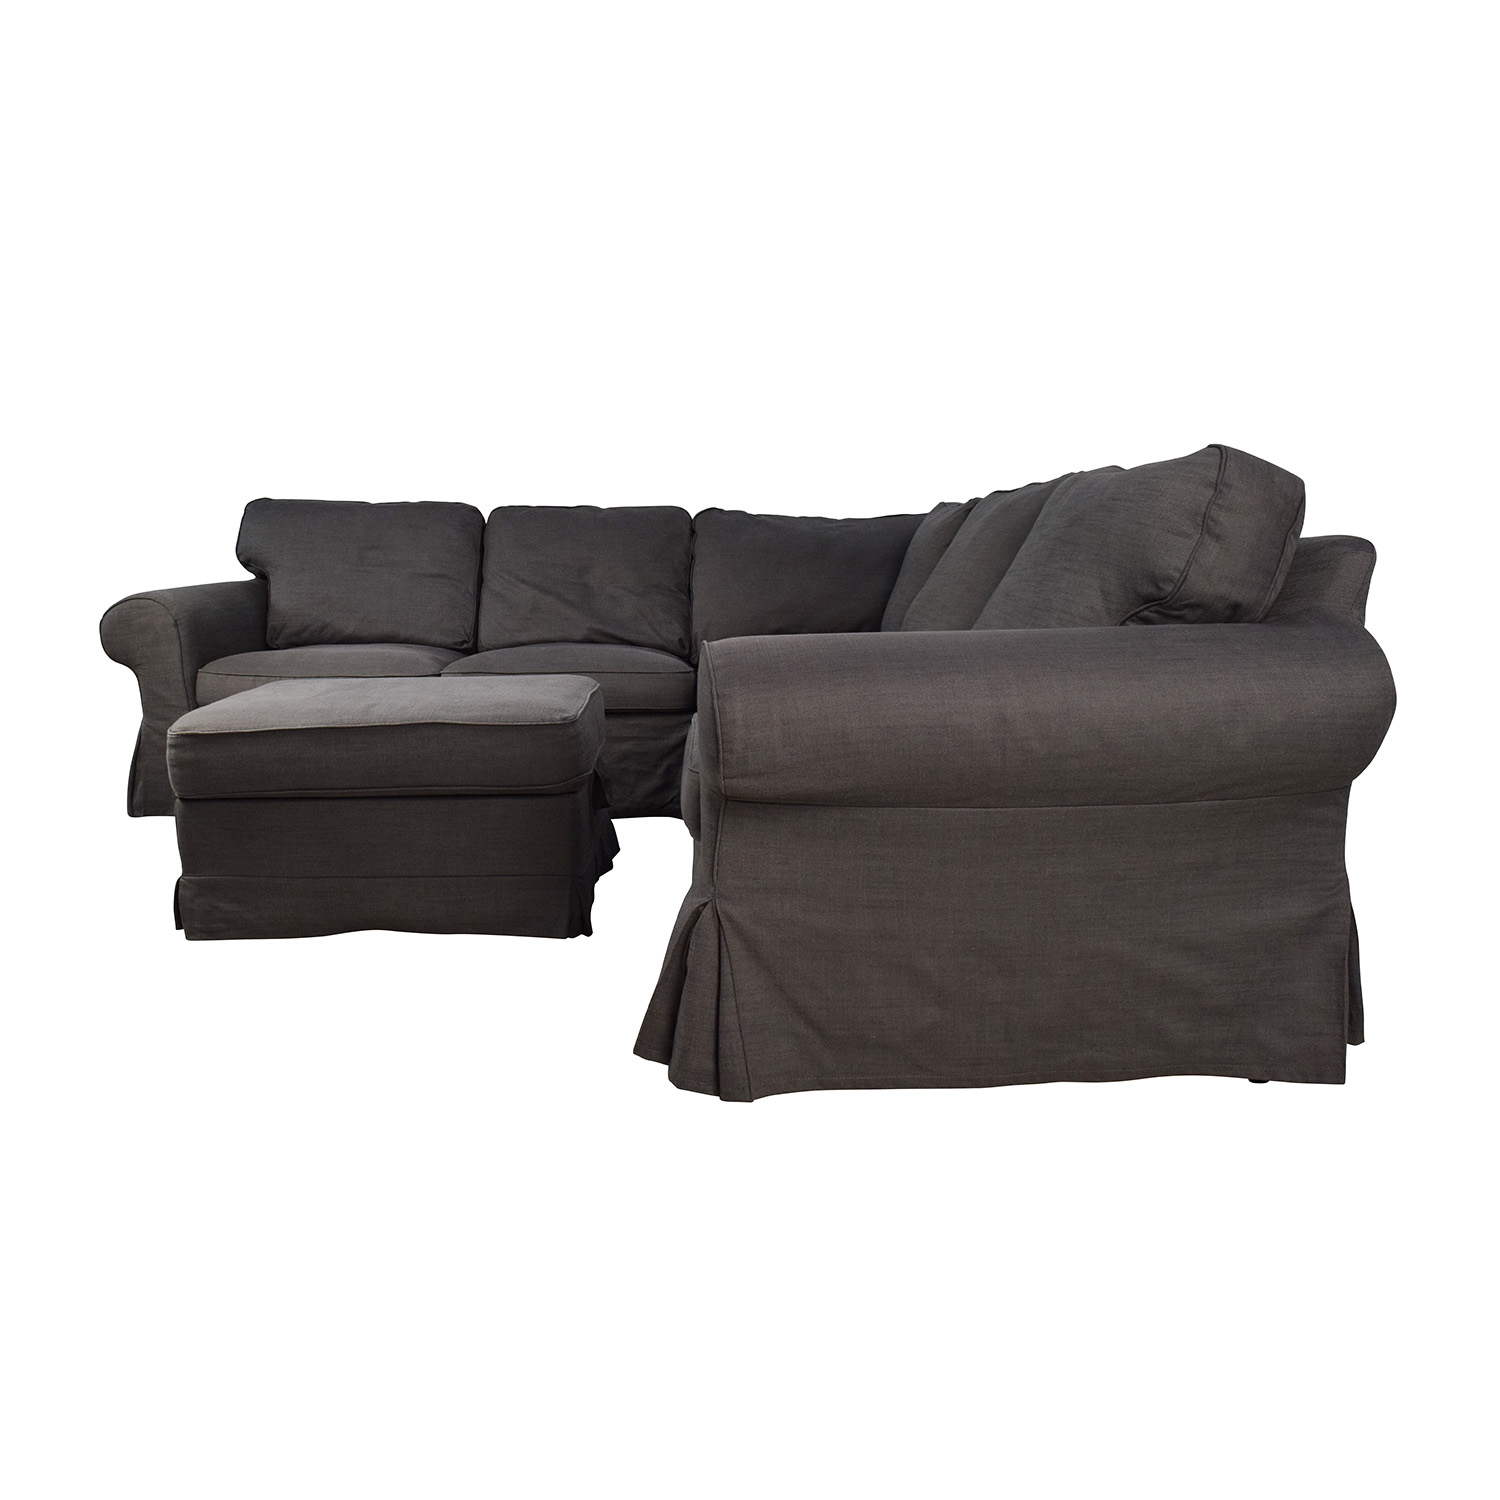 Awesome 39 Off Ikea Ikea Ektorp Gray Corner Sectional With Ottoman Sofas Ncnpc Chair Design For Home Ncnpcorg